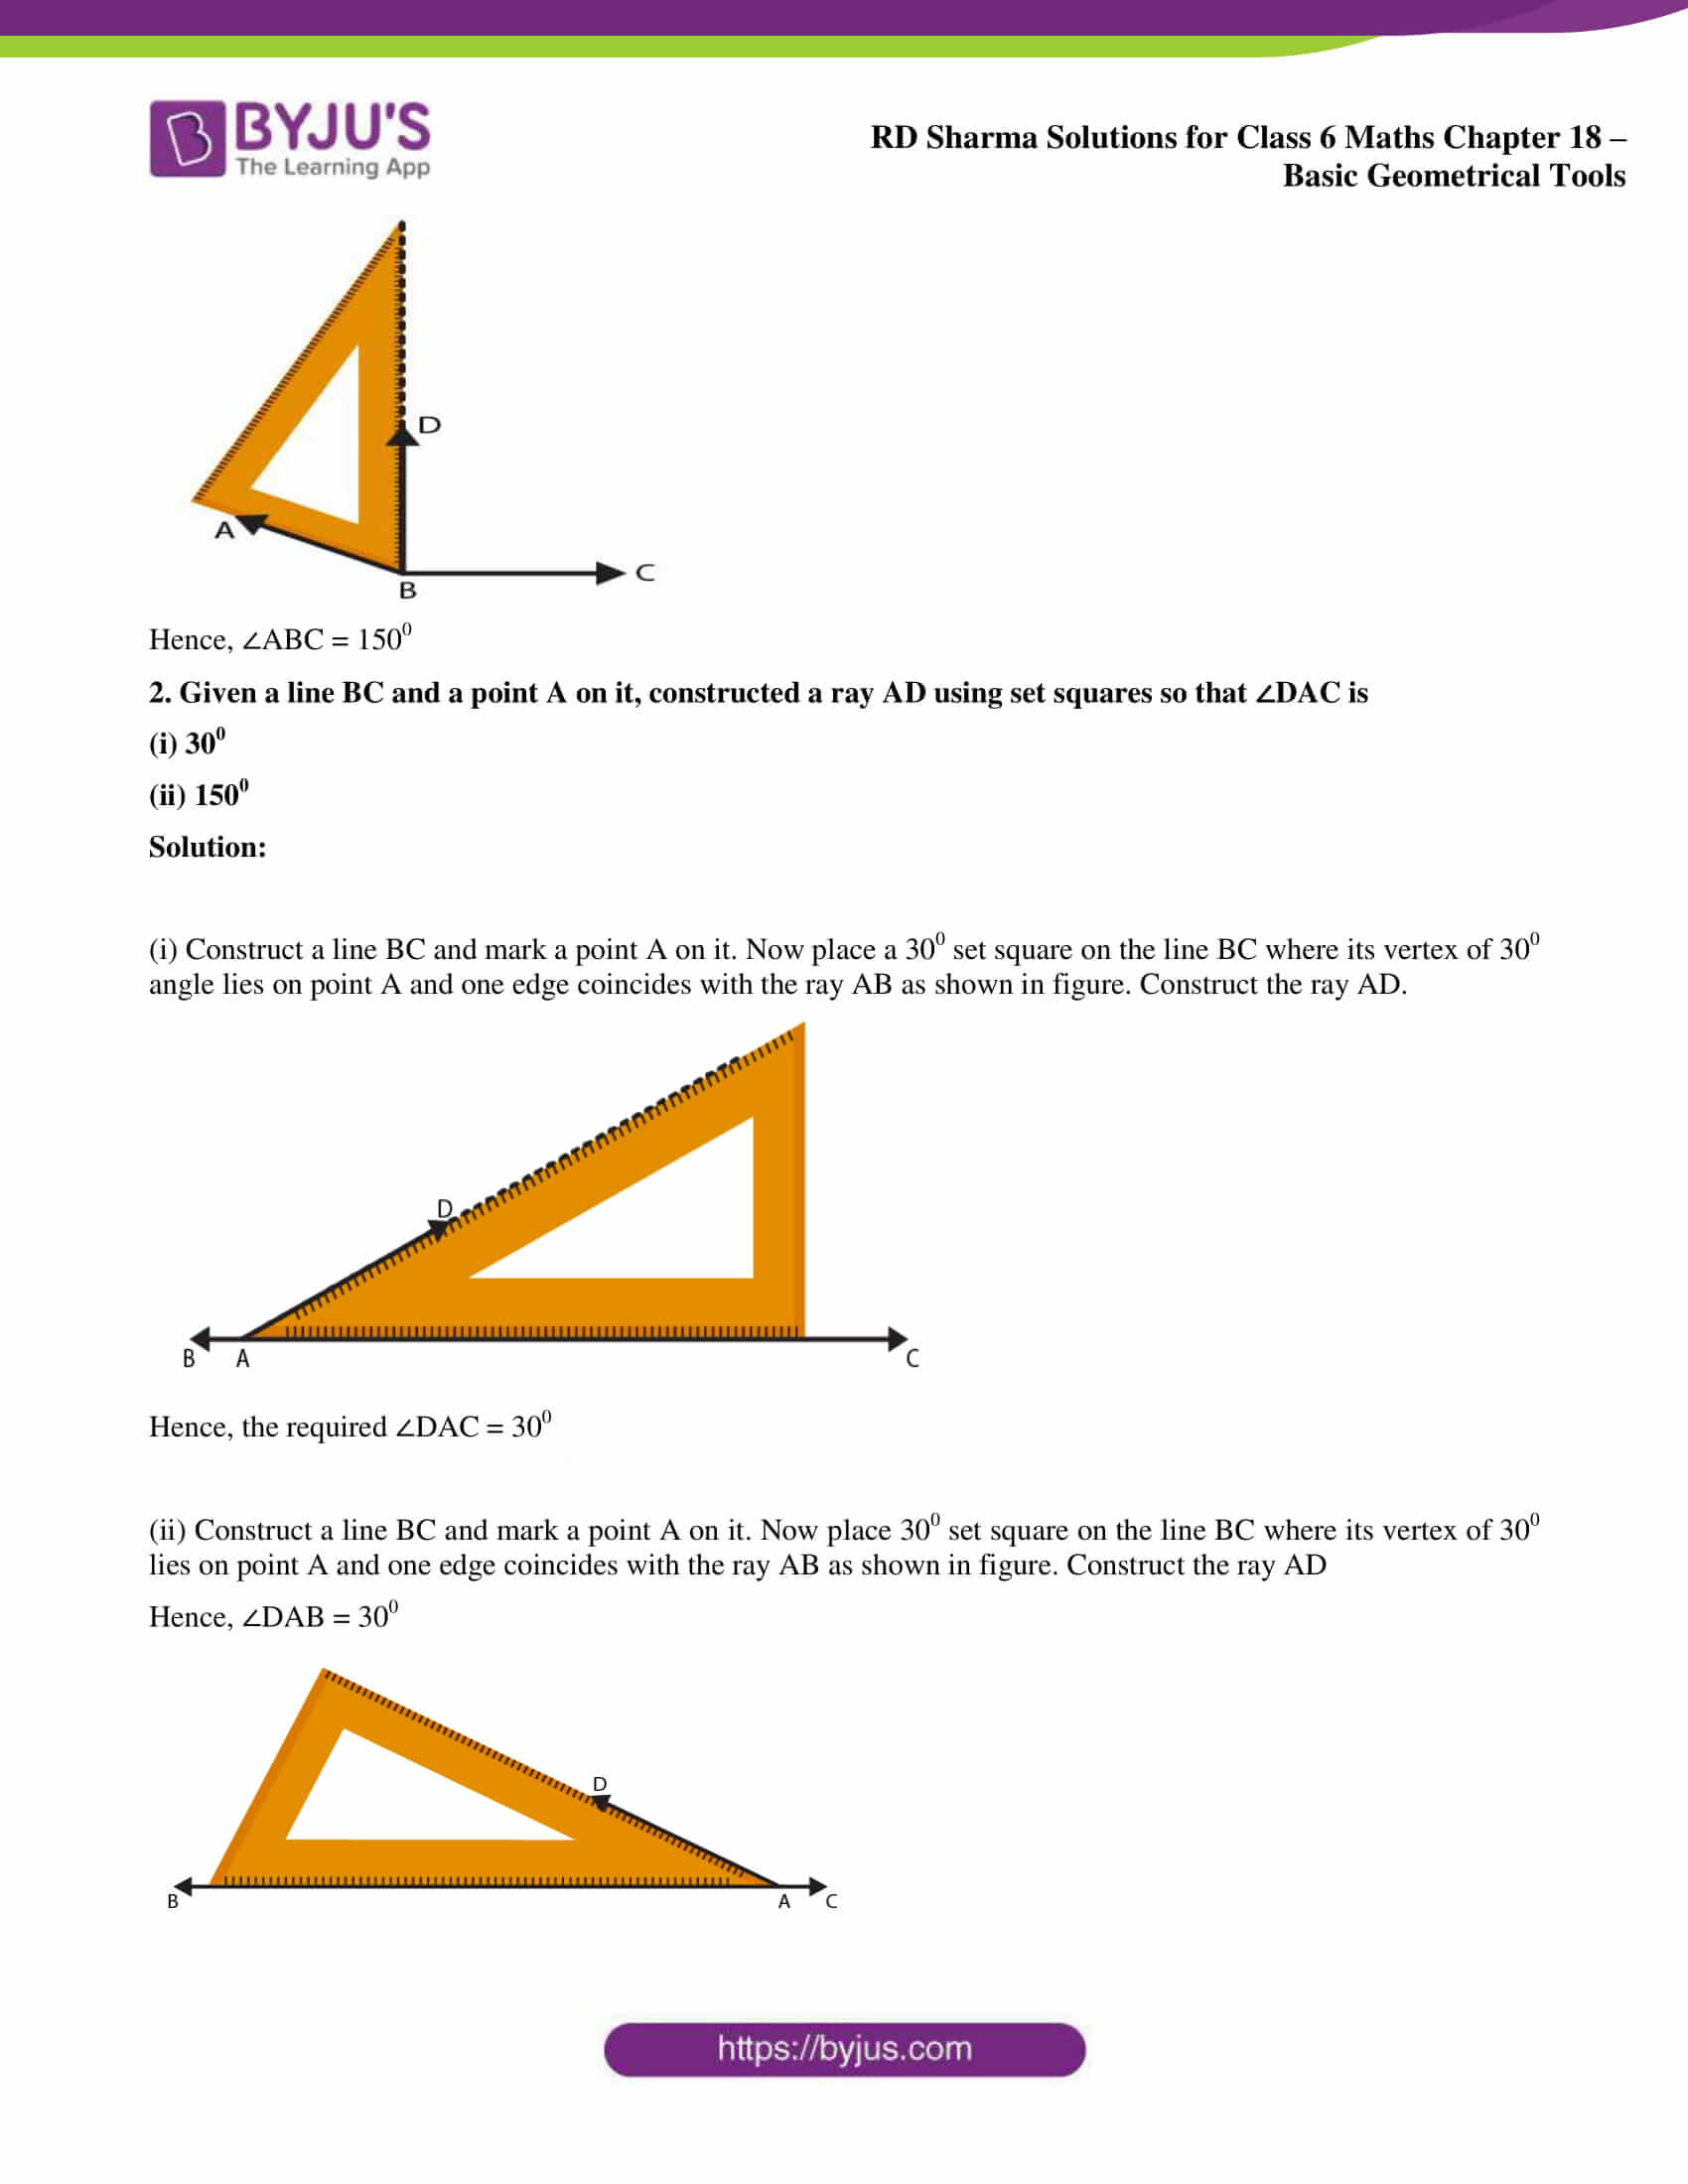 rd sharma solutions nov2020 class 6 maths chapter 18 exercise 1 4